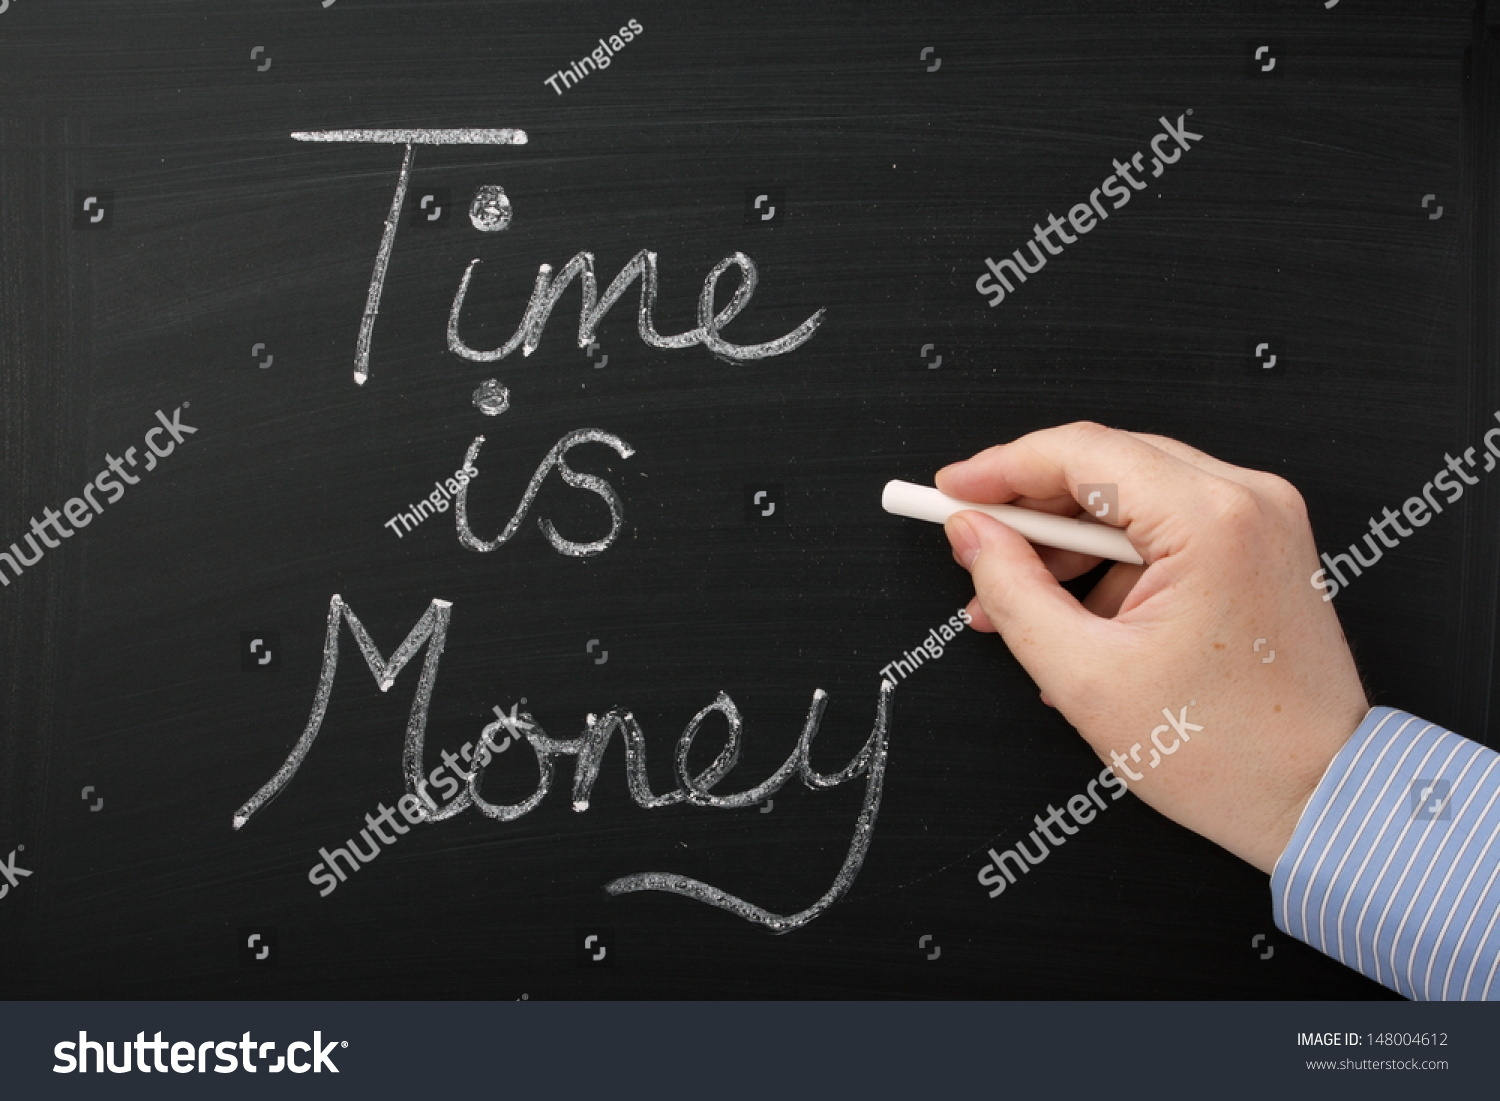 time is money essay in english The tiny infant cuddled in the warmth of the cradle soon becomes a cute toddler who runs after butterflies and rainbows related articles: 'money' : essay on the.